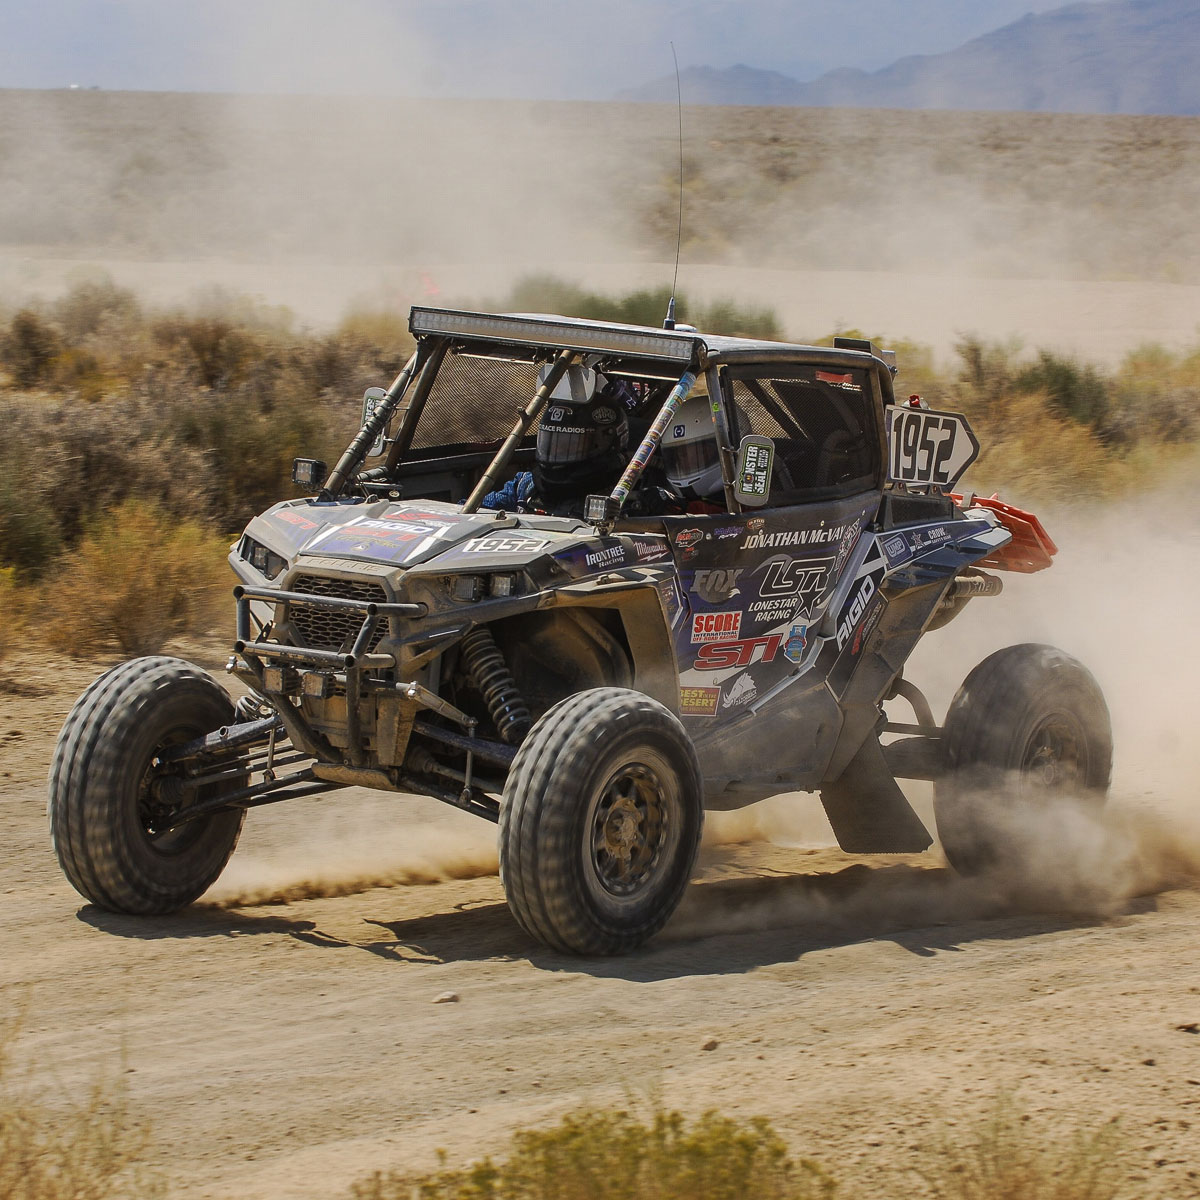 Chicane RX | STI Powersports | Tires & Wheels for ATVs, UTVs